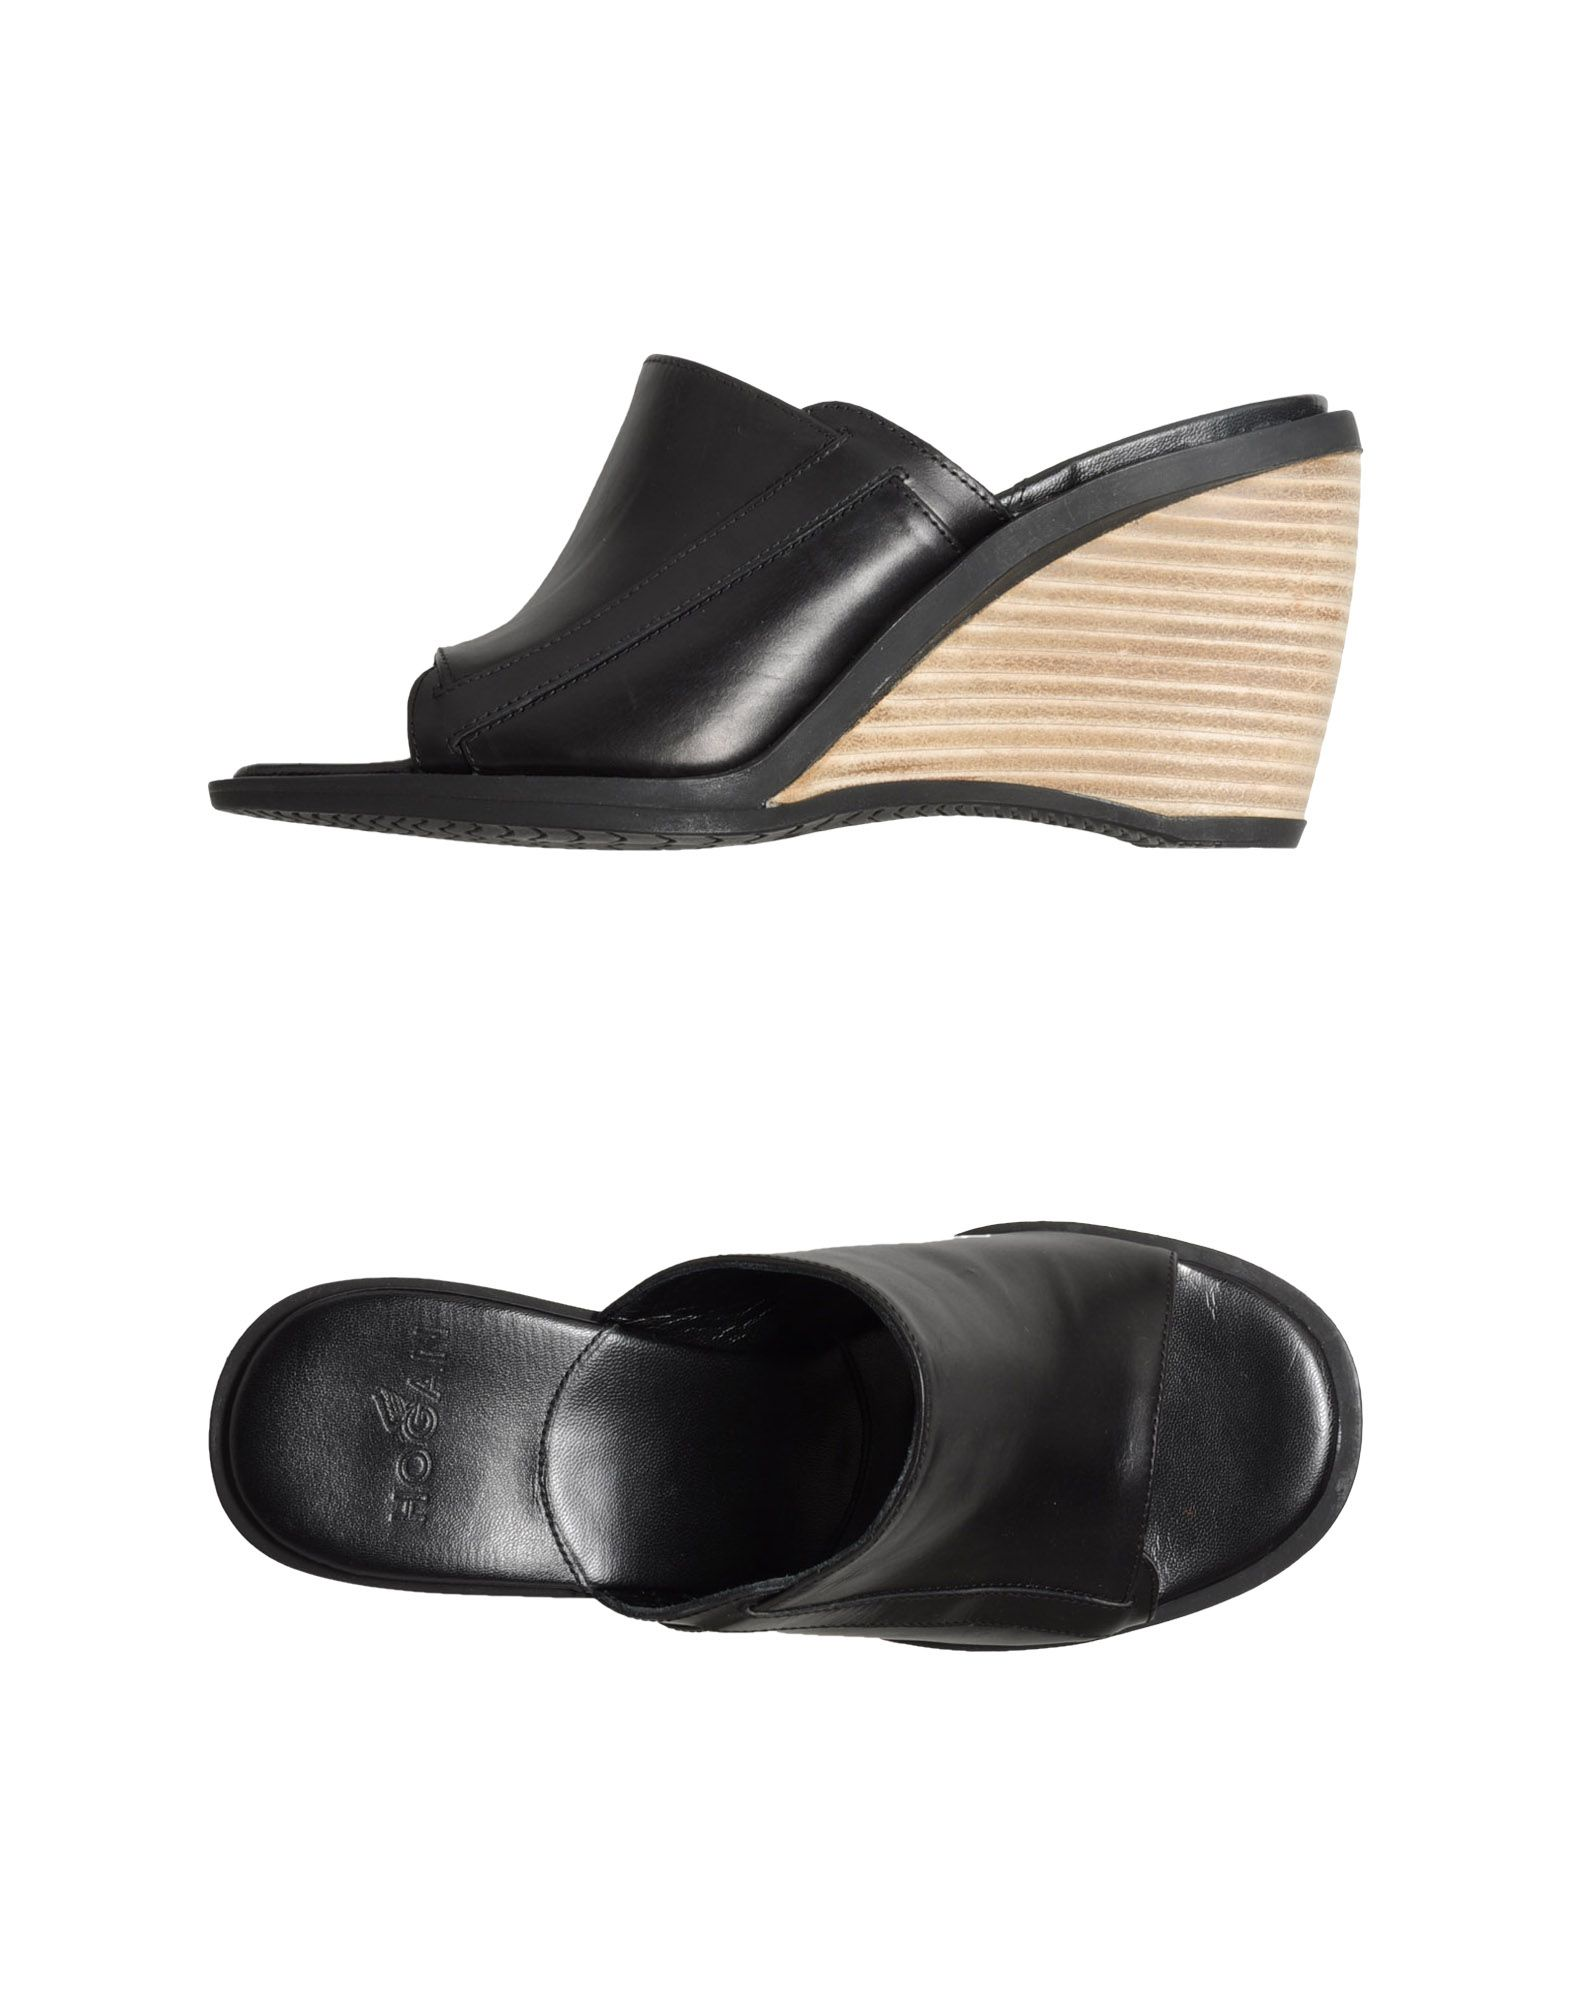 HOGAN Wedges. polished leather, solid color, round toeline, no appliqués, rubber sole, wooden wedge. Soft leather